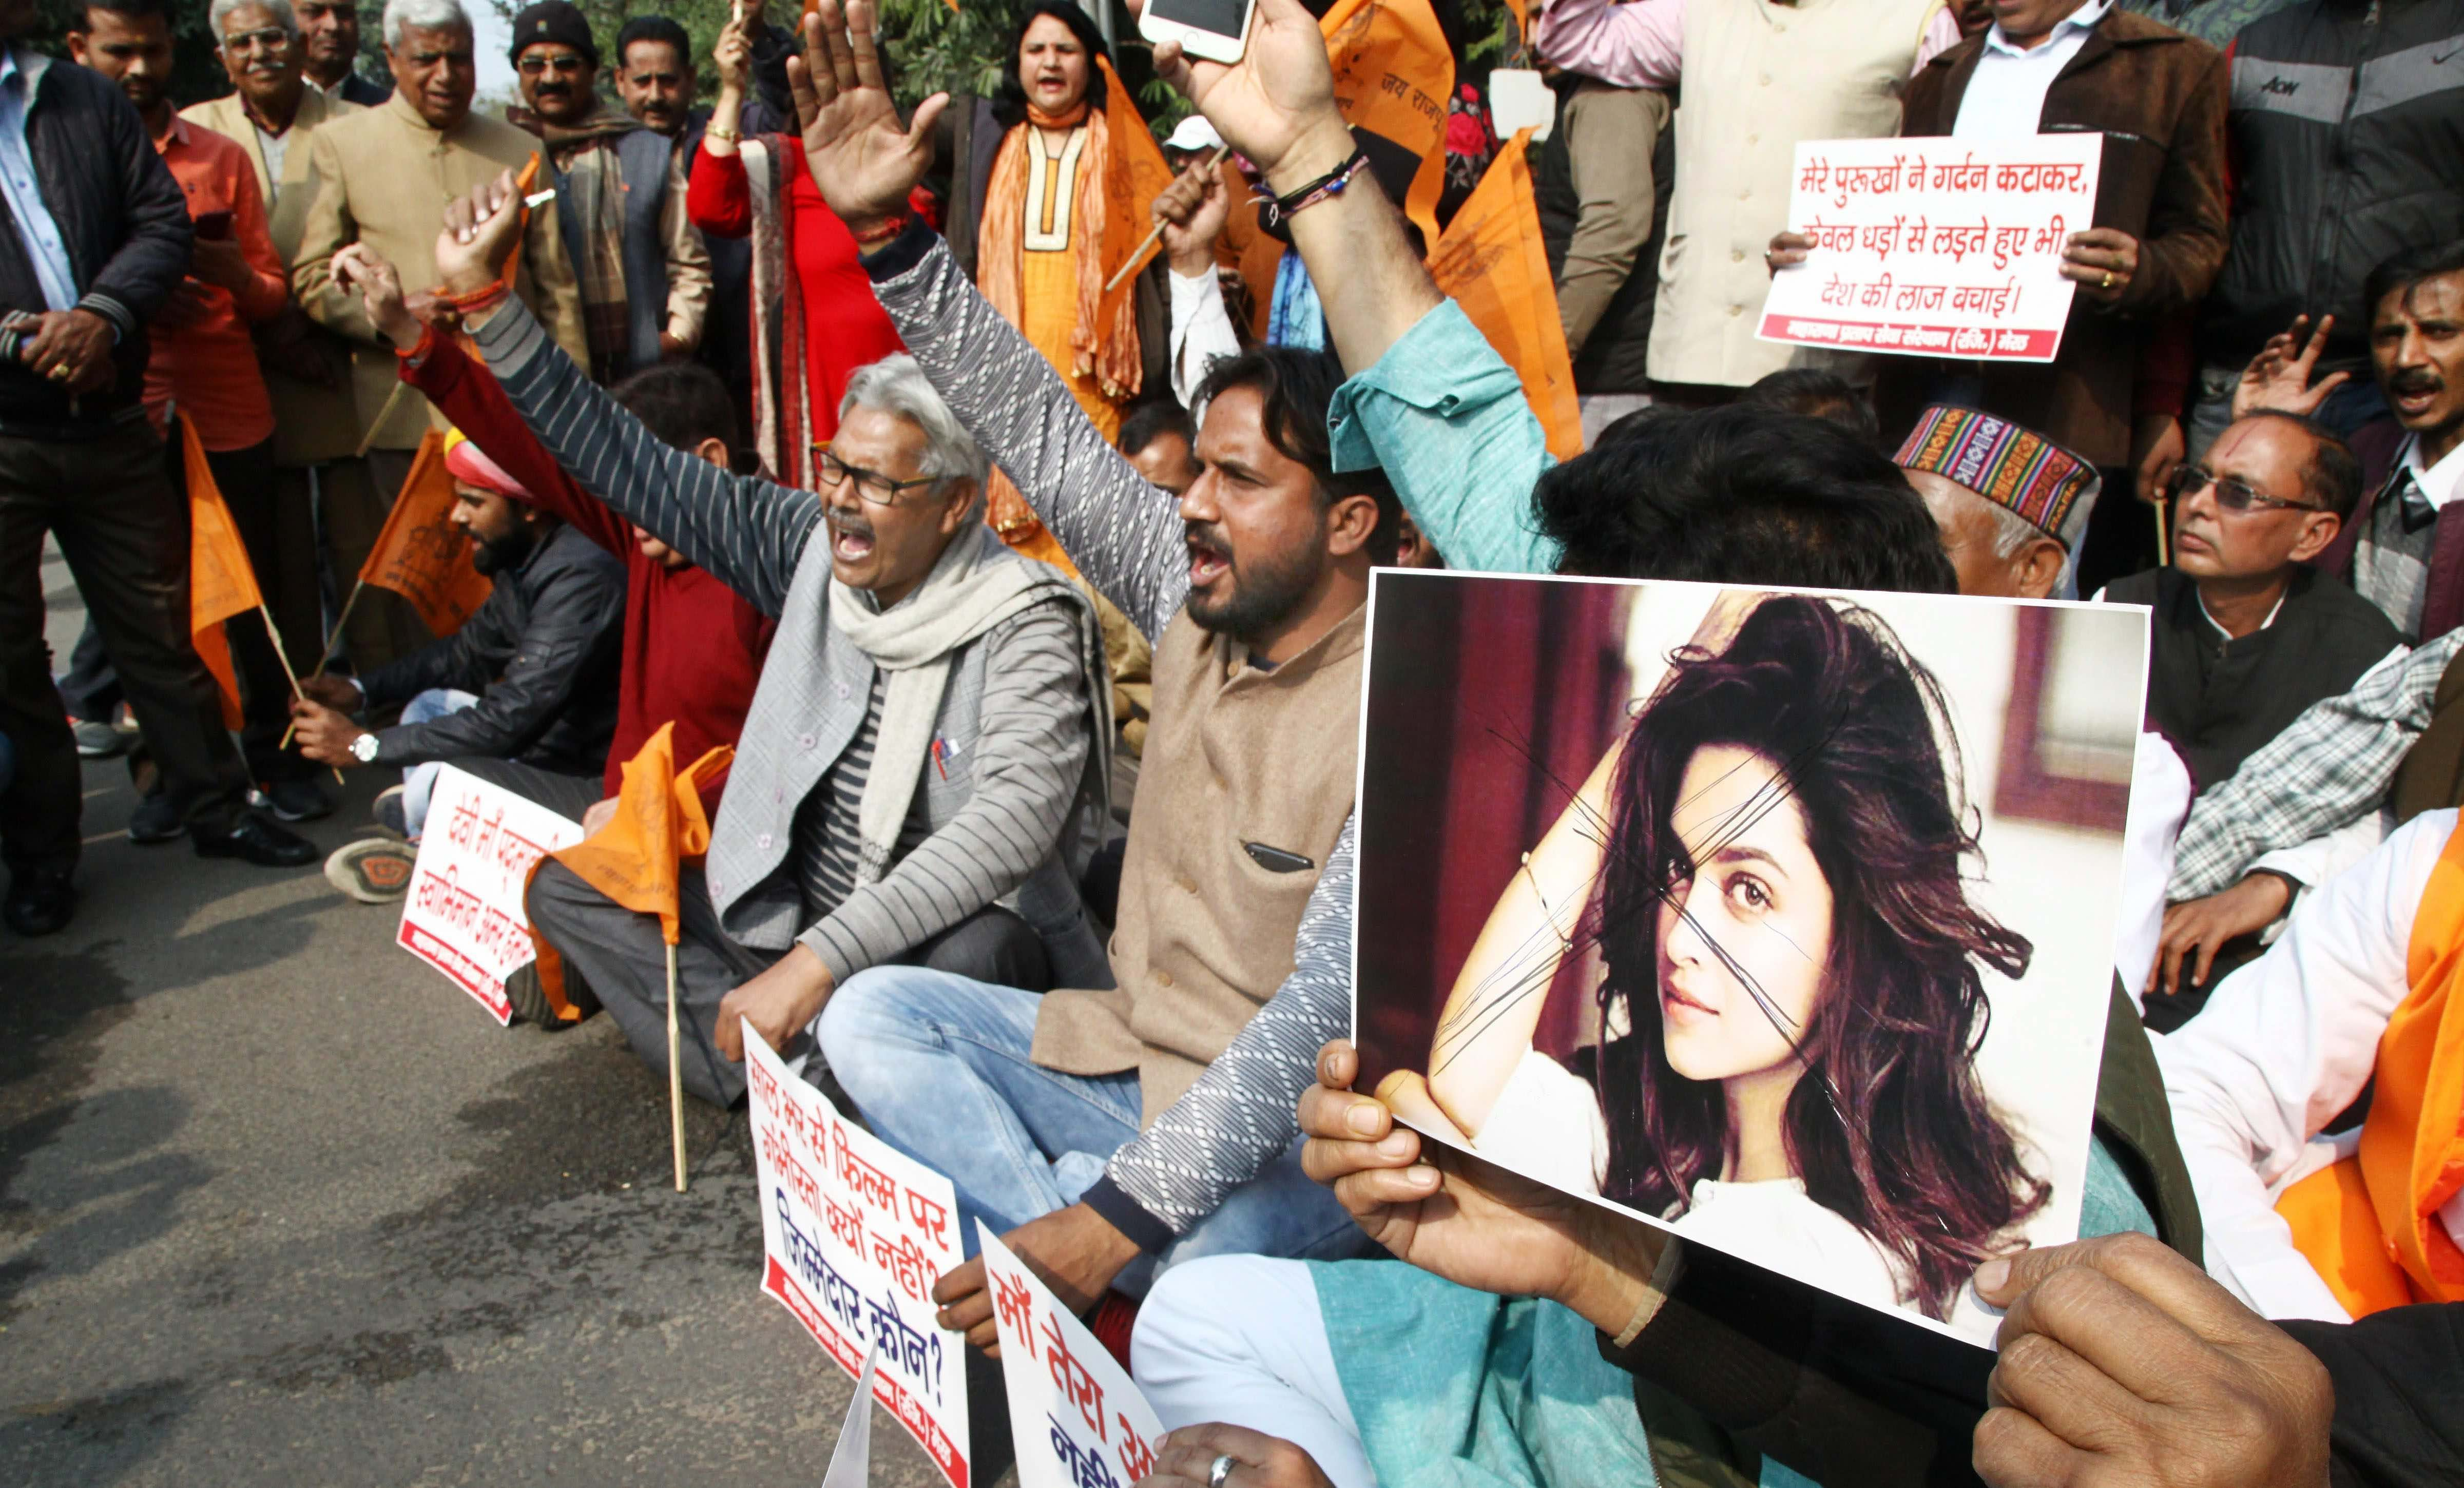 Members of the Rajput community protest against the release of film 'Padmaavat' in Meerut o Wednesday. Credit: PTI